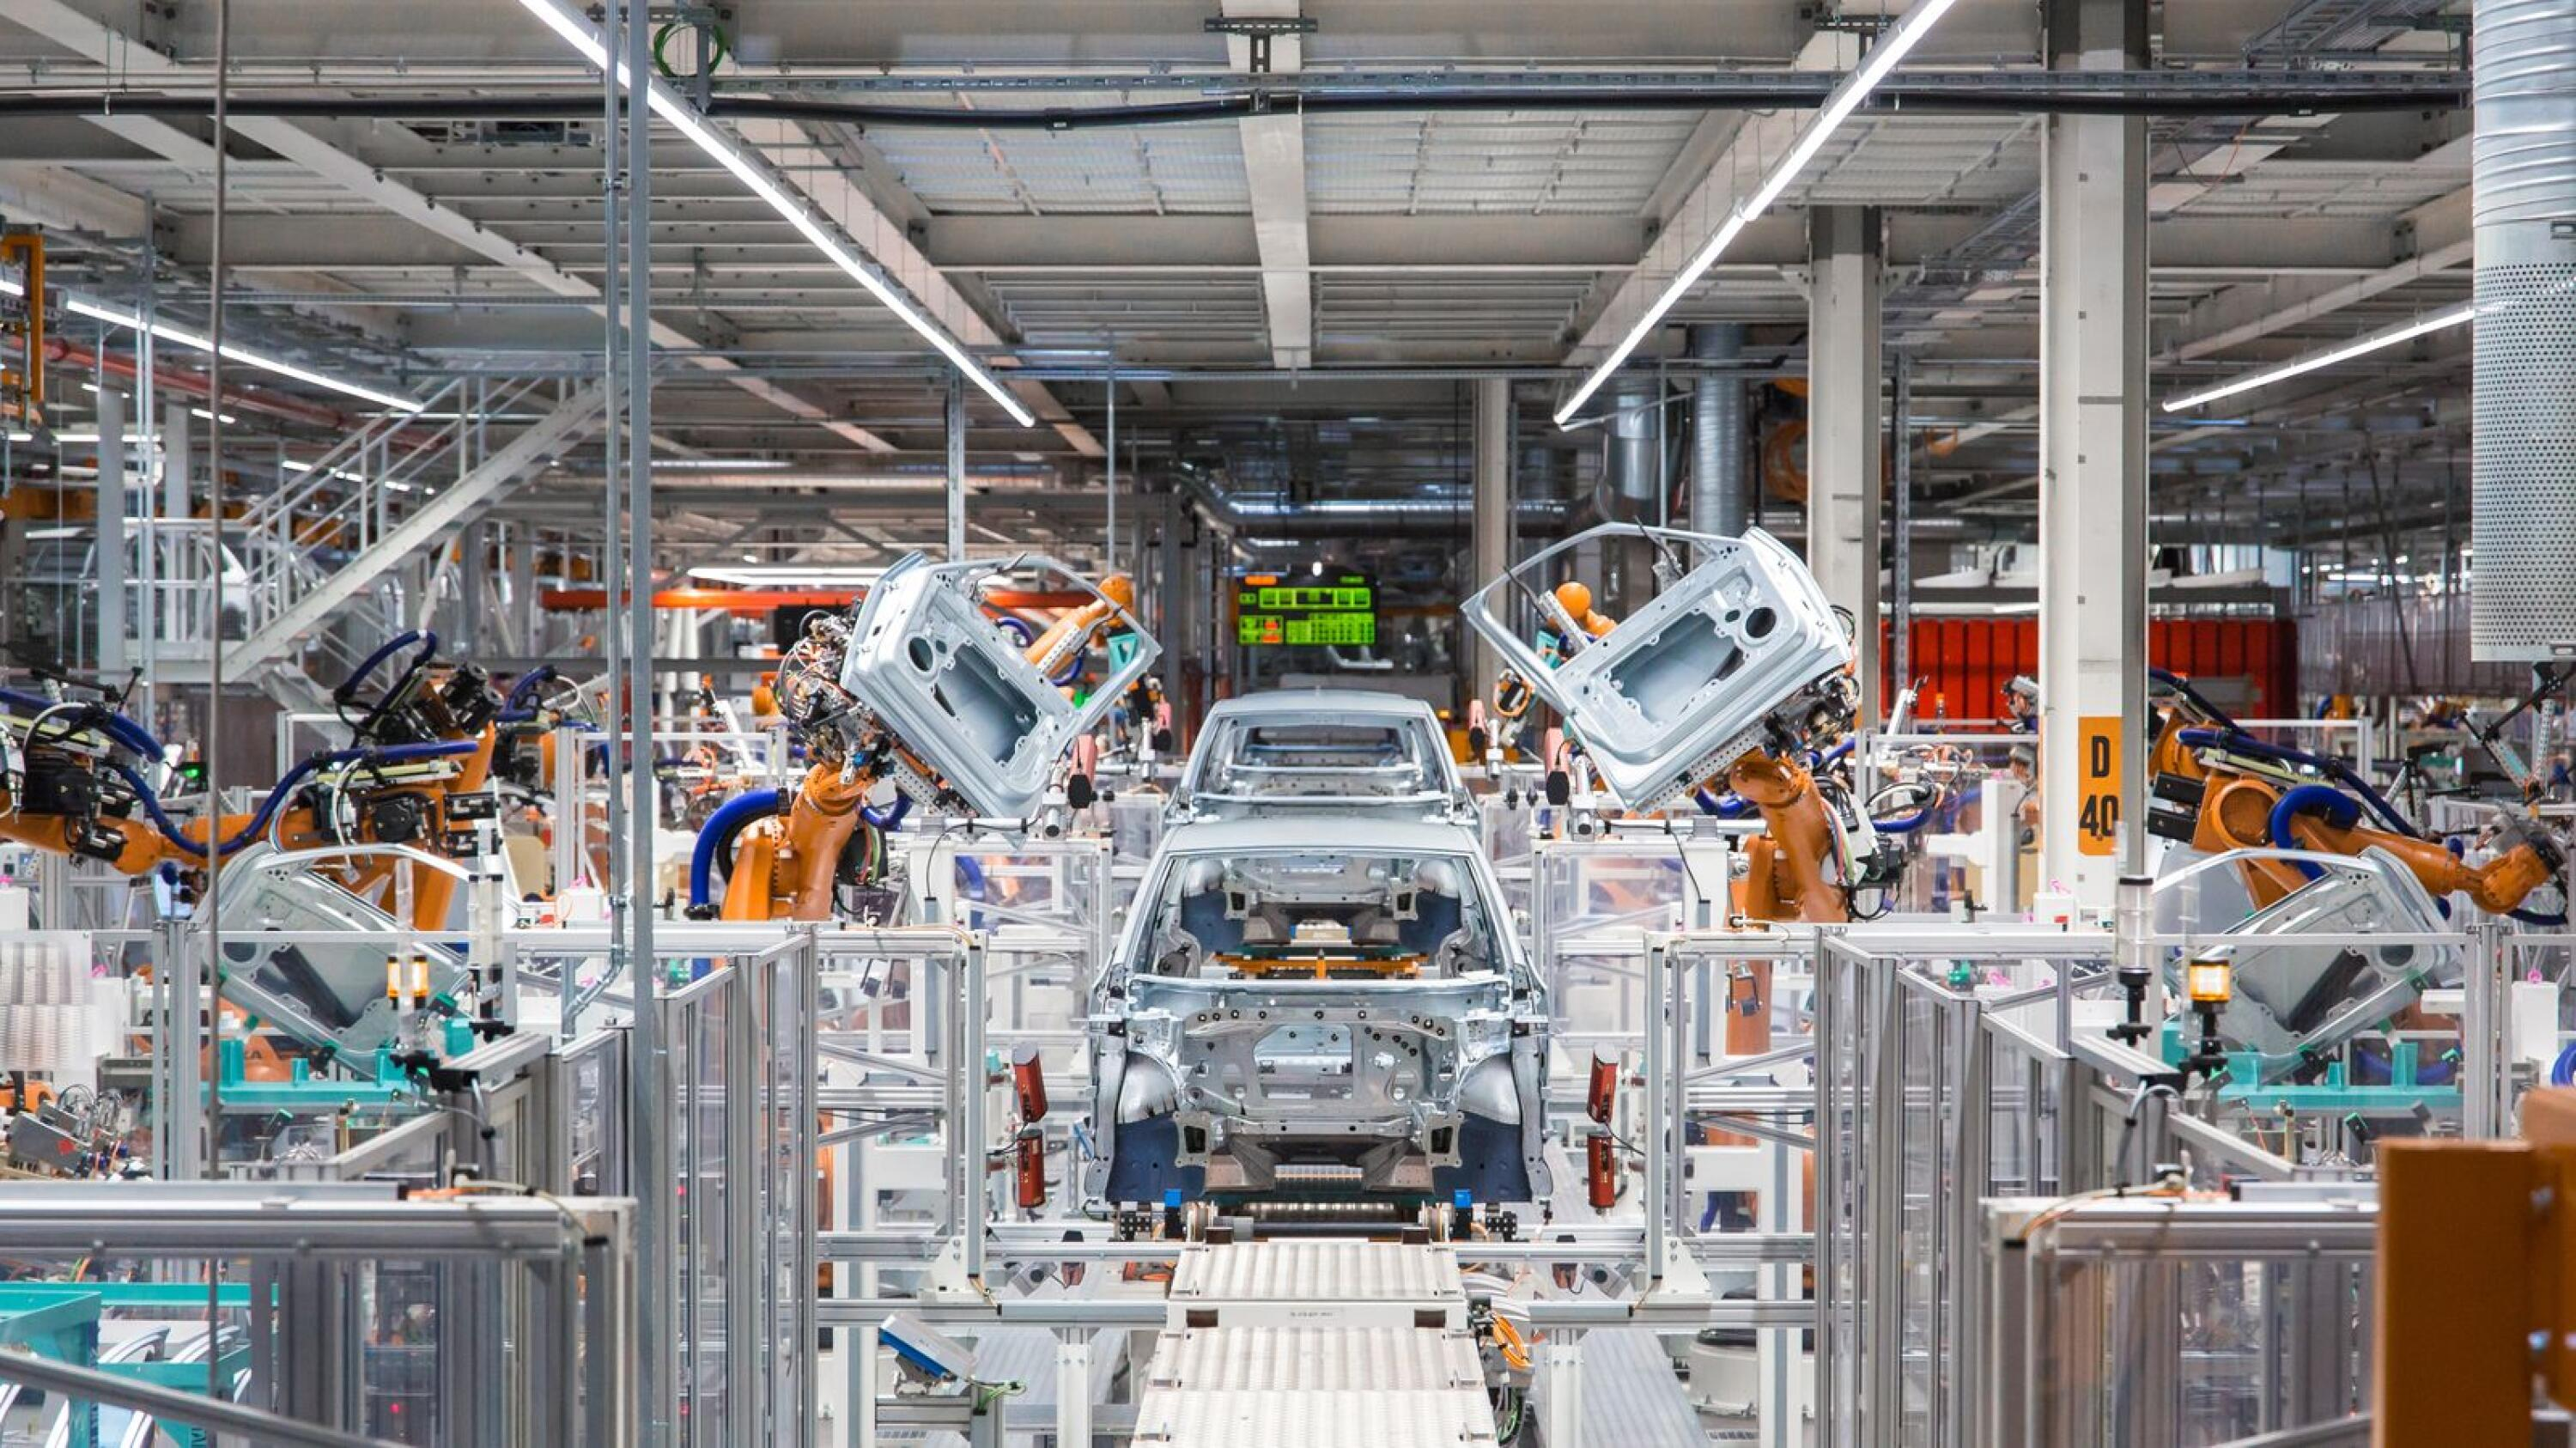 Automotive production lines around the world are grinding to a halt due to semiconductor chip shortages